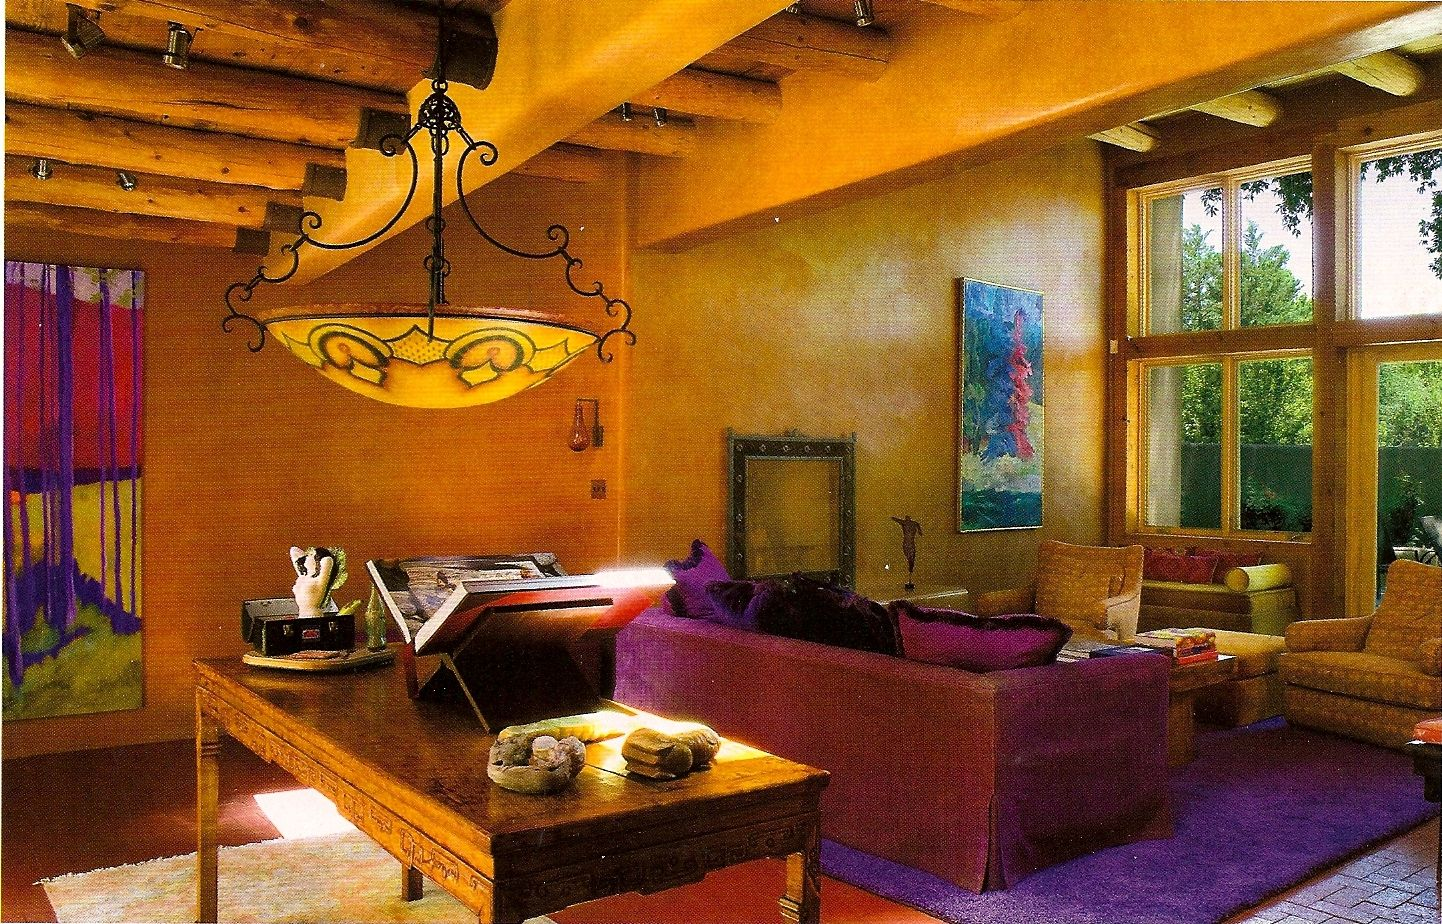 Coolest New Mexico Interior Design Ideas 3 #11930 in 2019 ...